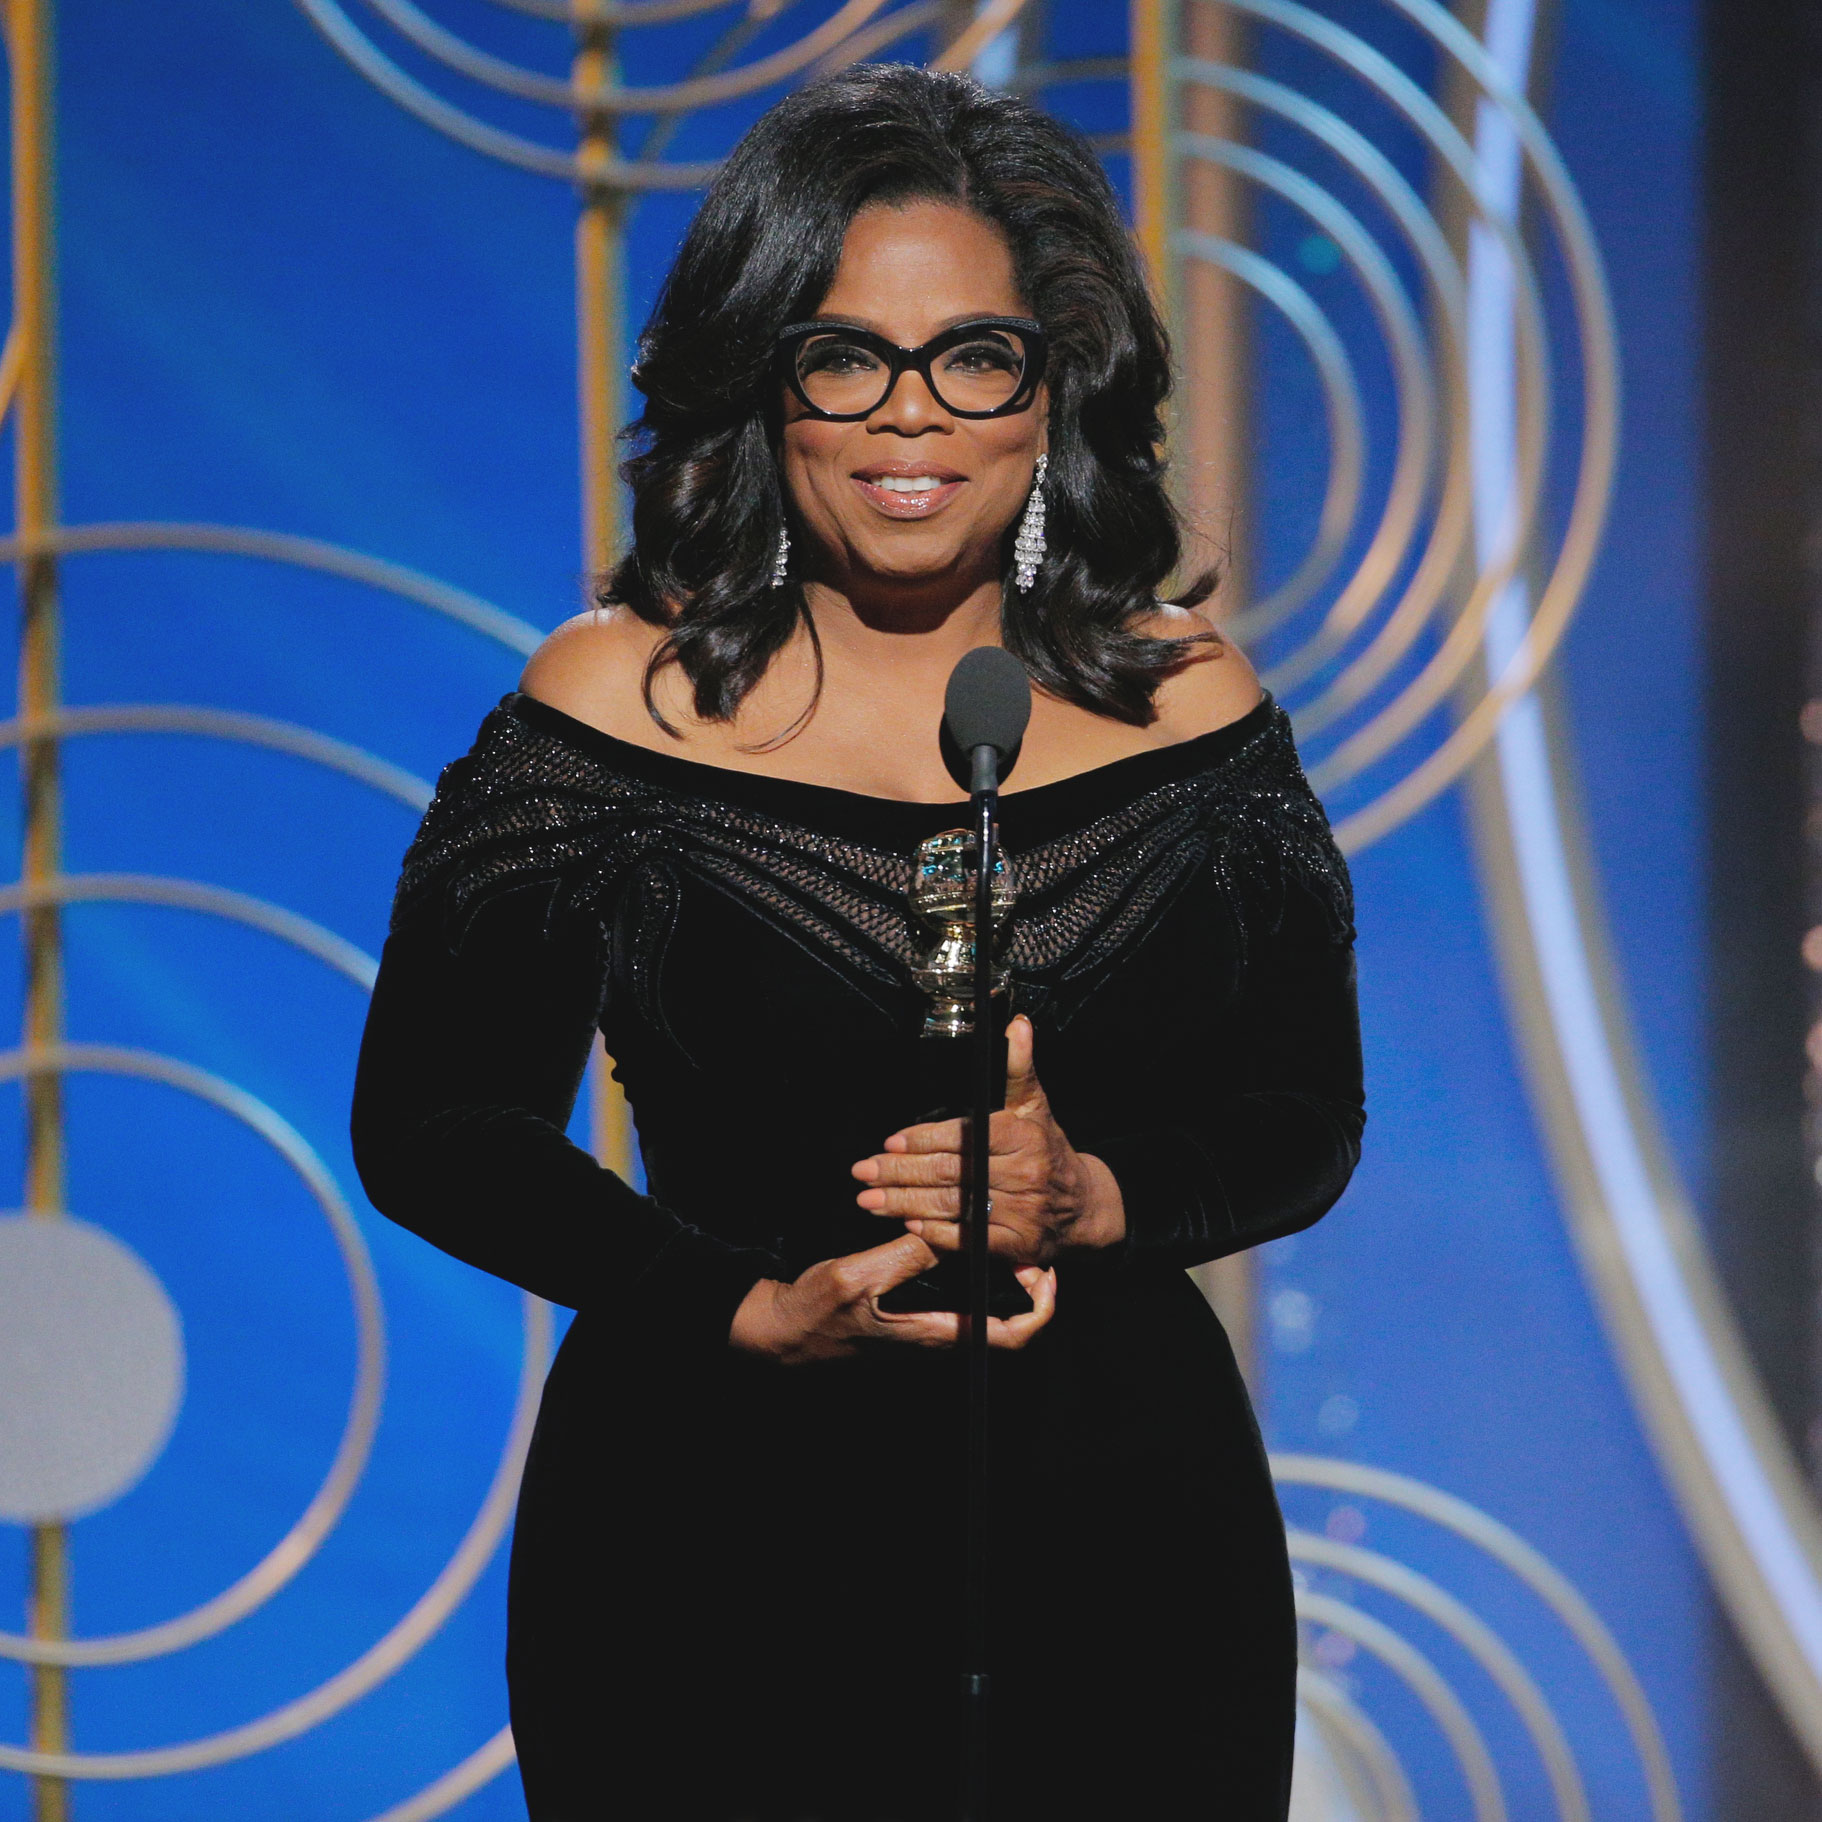 BADASS WOMEN OF THE YEAR: OPRAH WINFREY